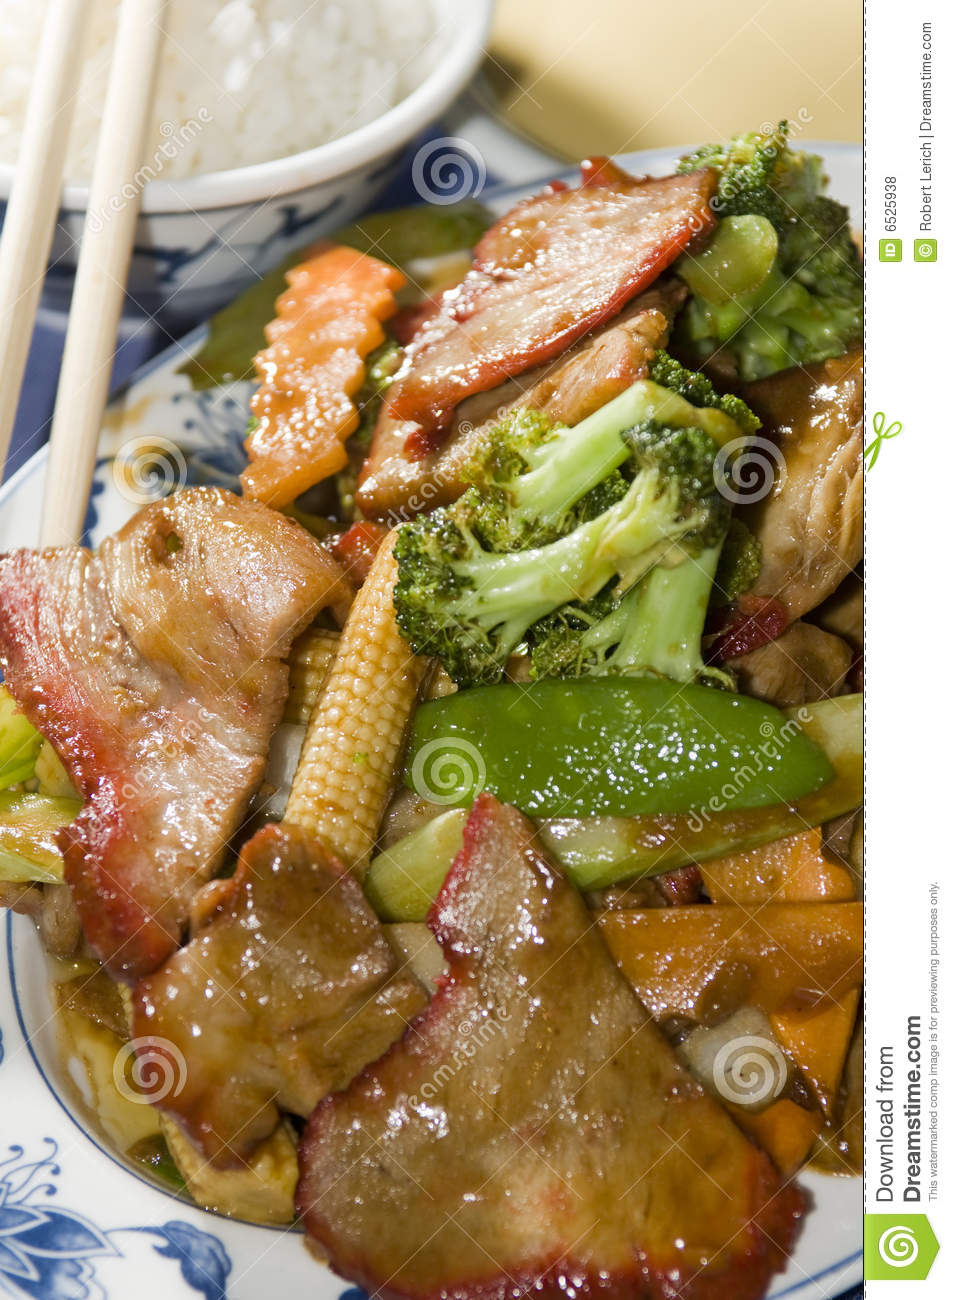 Roast Pork With Mixed Chinese Vegetables Royalty Free Stock Photos ...